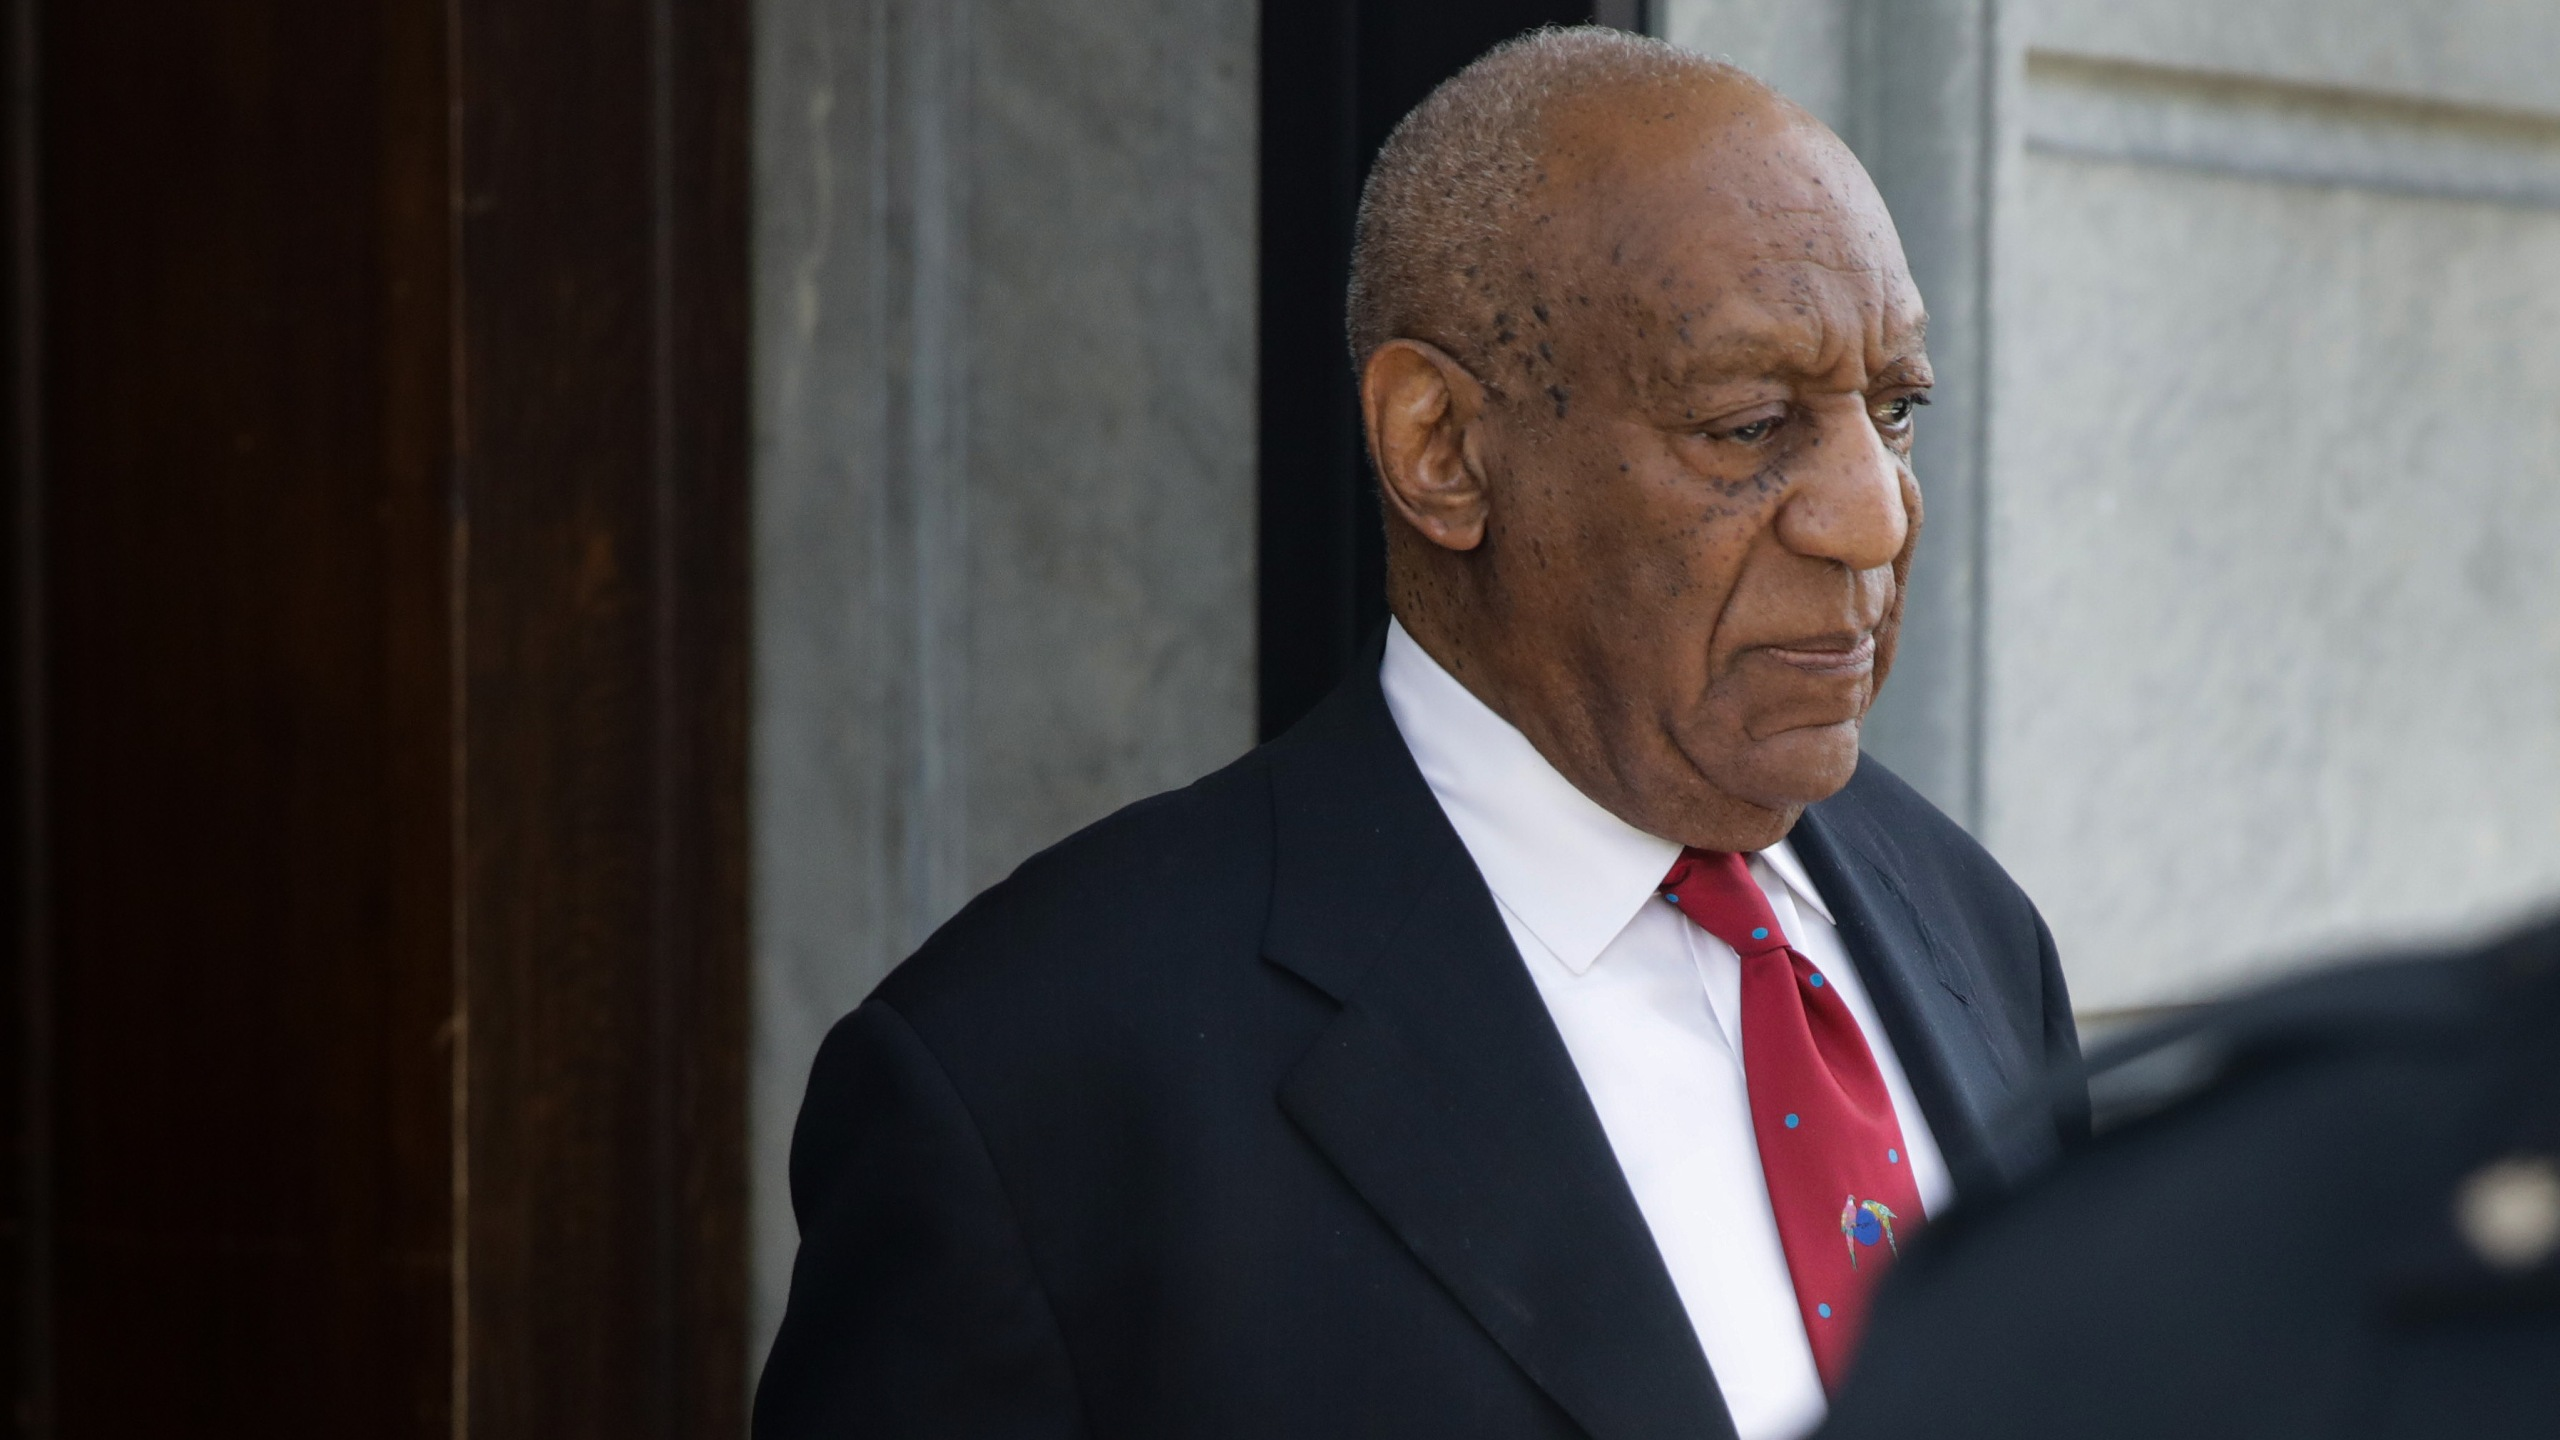 Actor and comedian Bill Cosby comes out of the Courthouse after the verdict in the retrial of his sexual assault case at the Montgomery County Courthouse in Norristown, Pennsylvania on April 26, 2018. (Credit: DOMINICK REUTER/AFP/Getty Images)